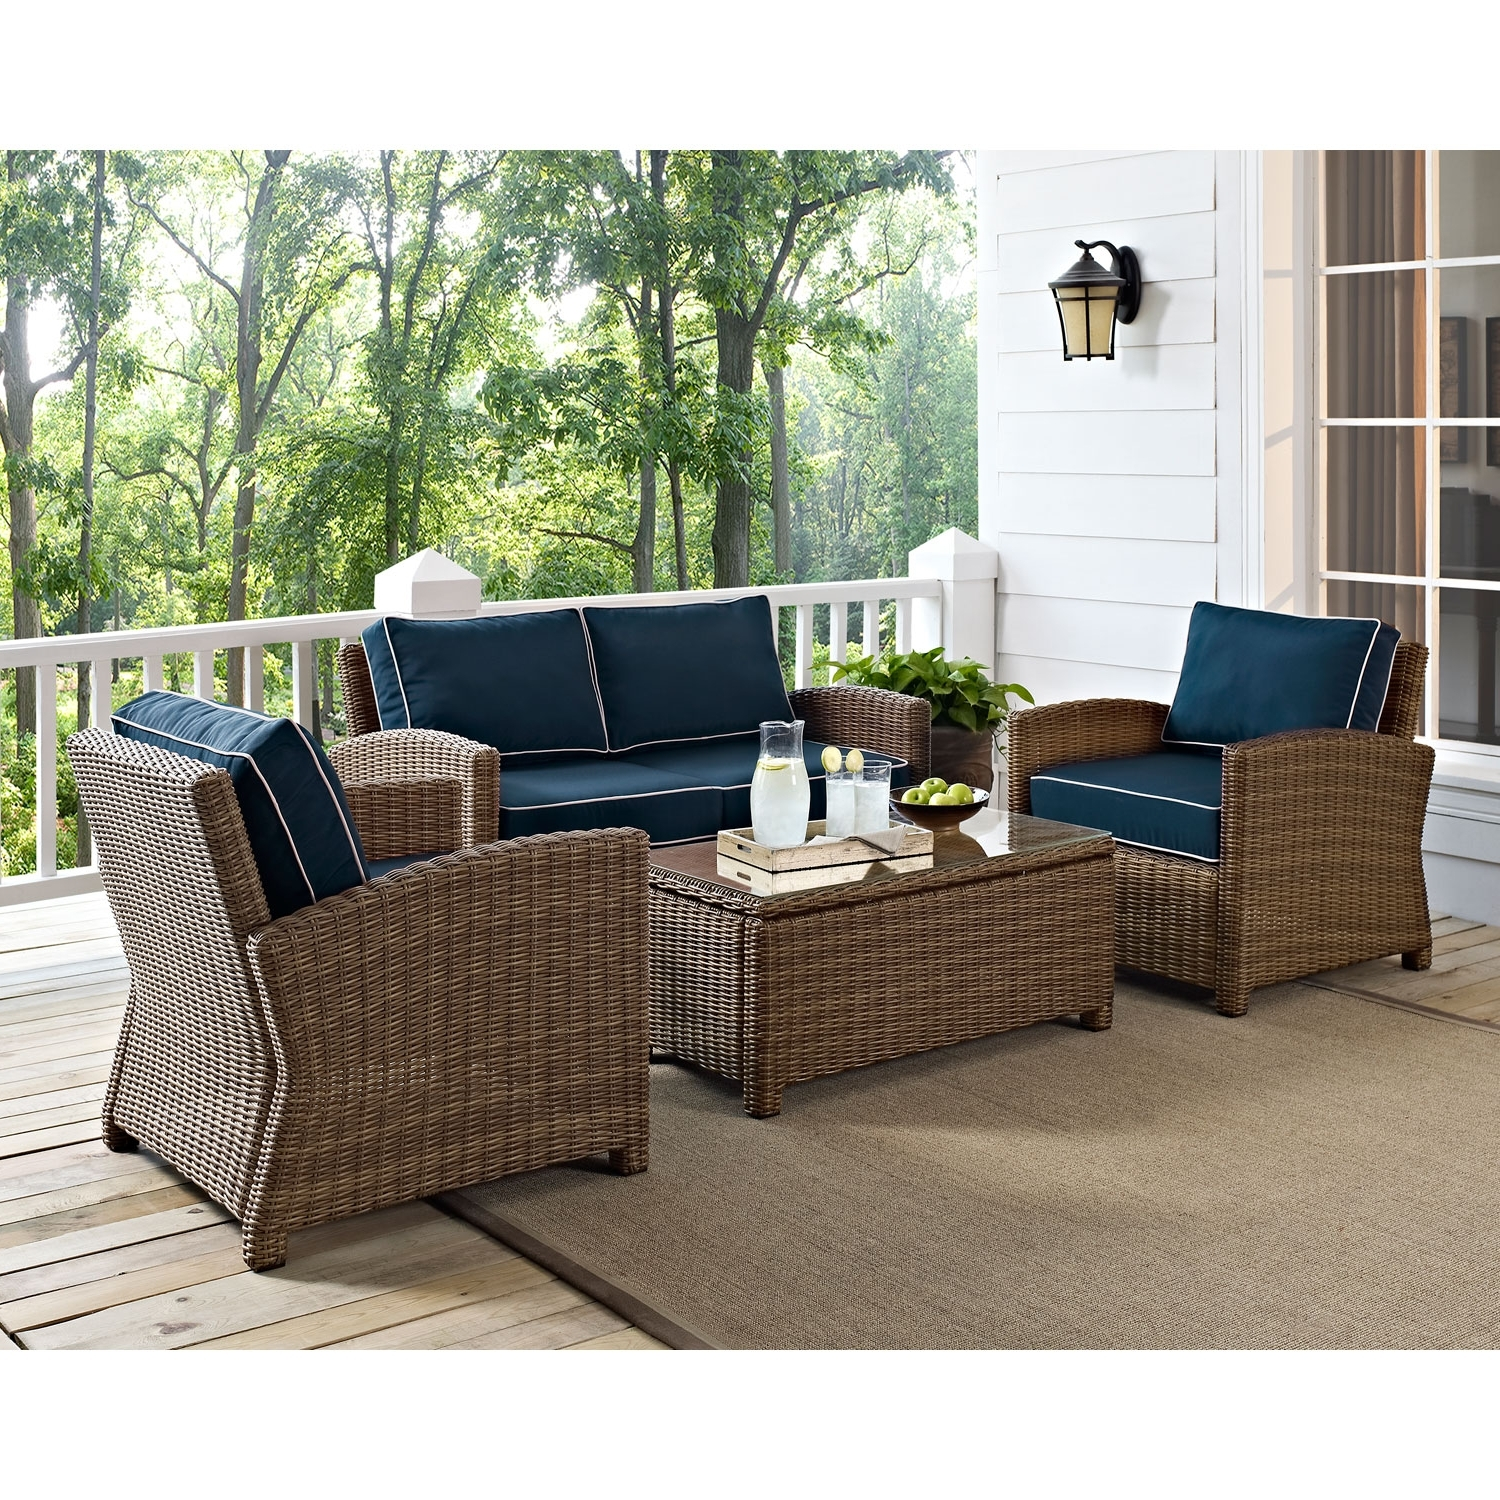 Wicker 4Pc Patio Conversation Sets With Navy Cushions Pertaining To Best And Newest Crosley Furniture Bradenton 4 Piece Outdoor Wicker Seating Set With (View 10 of 15)